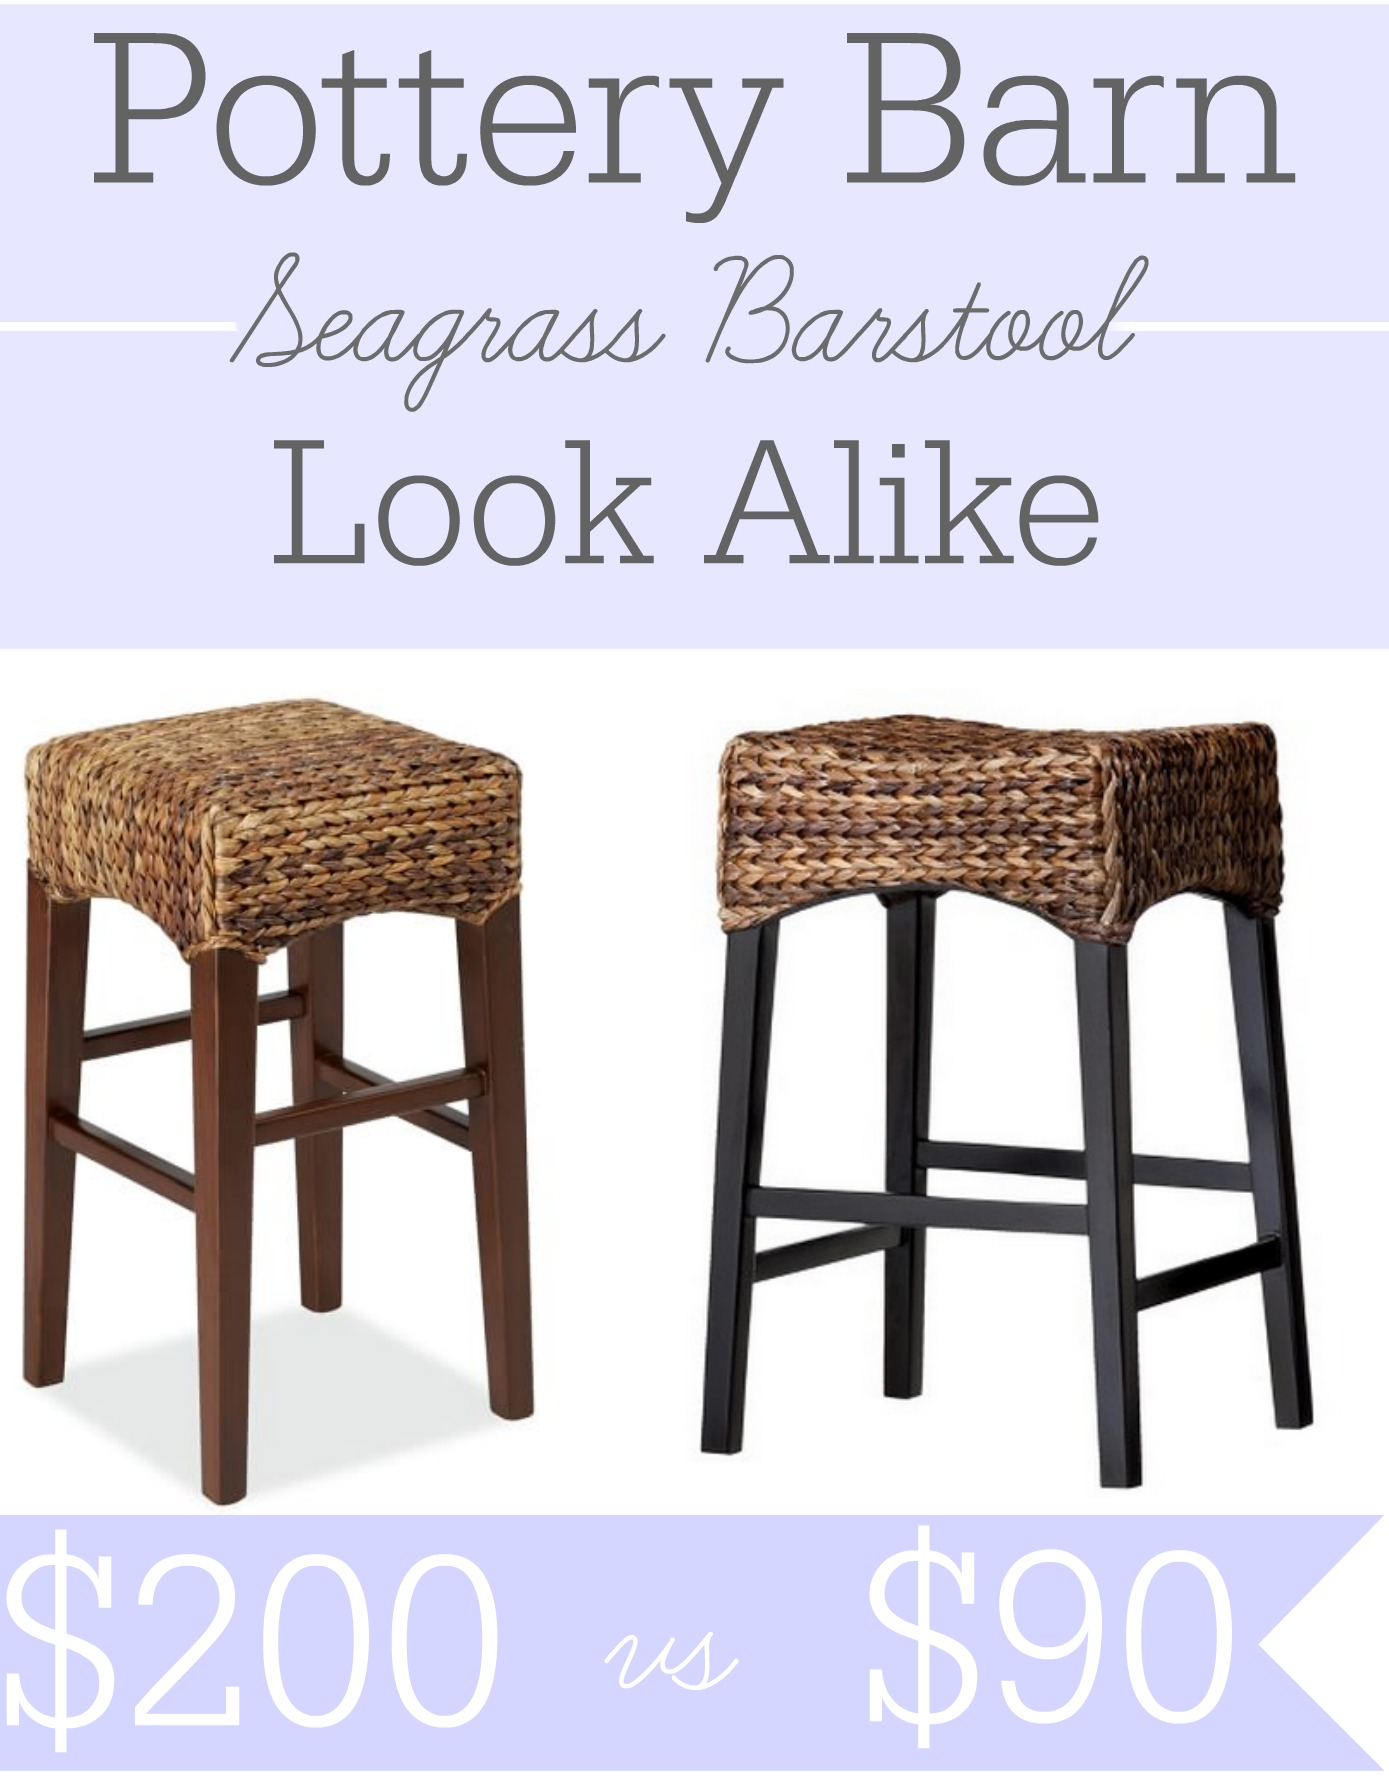 Pottery Barn Seagrass Barstool Look Alike At Target